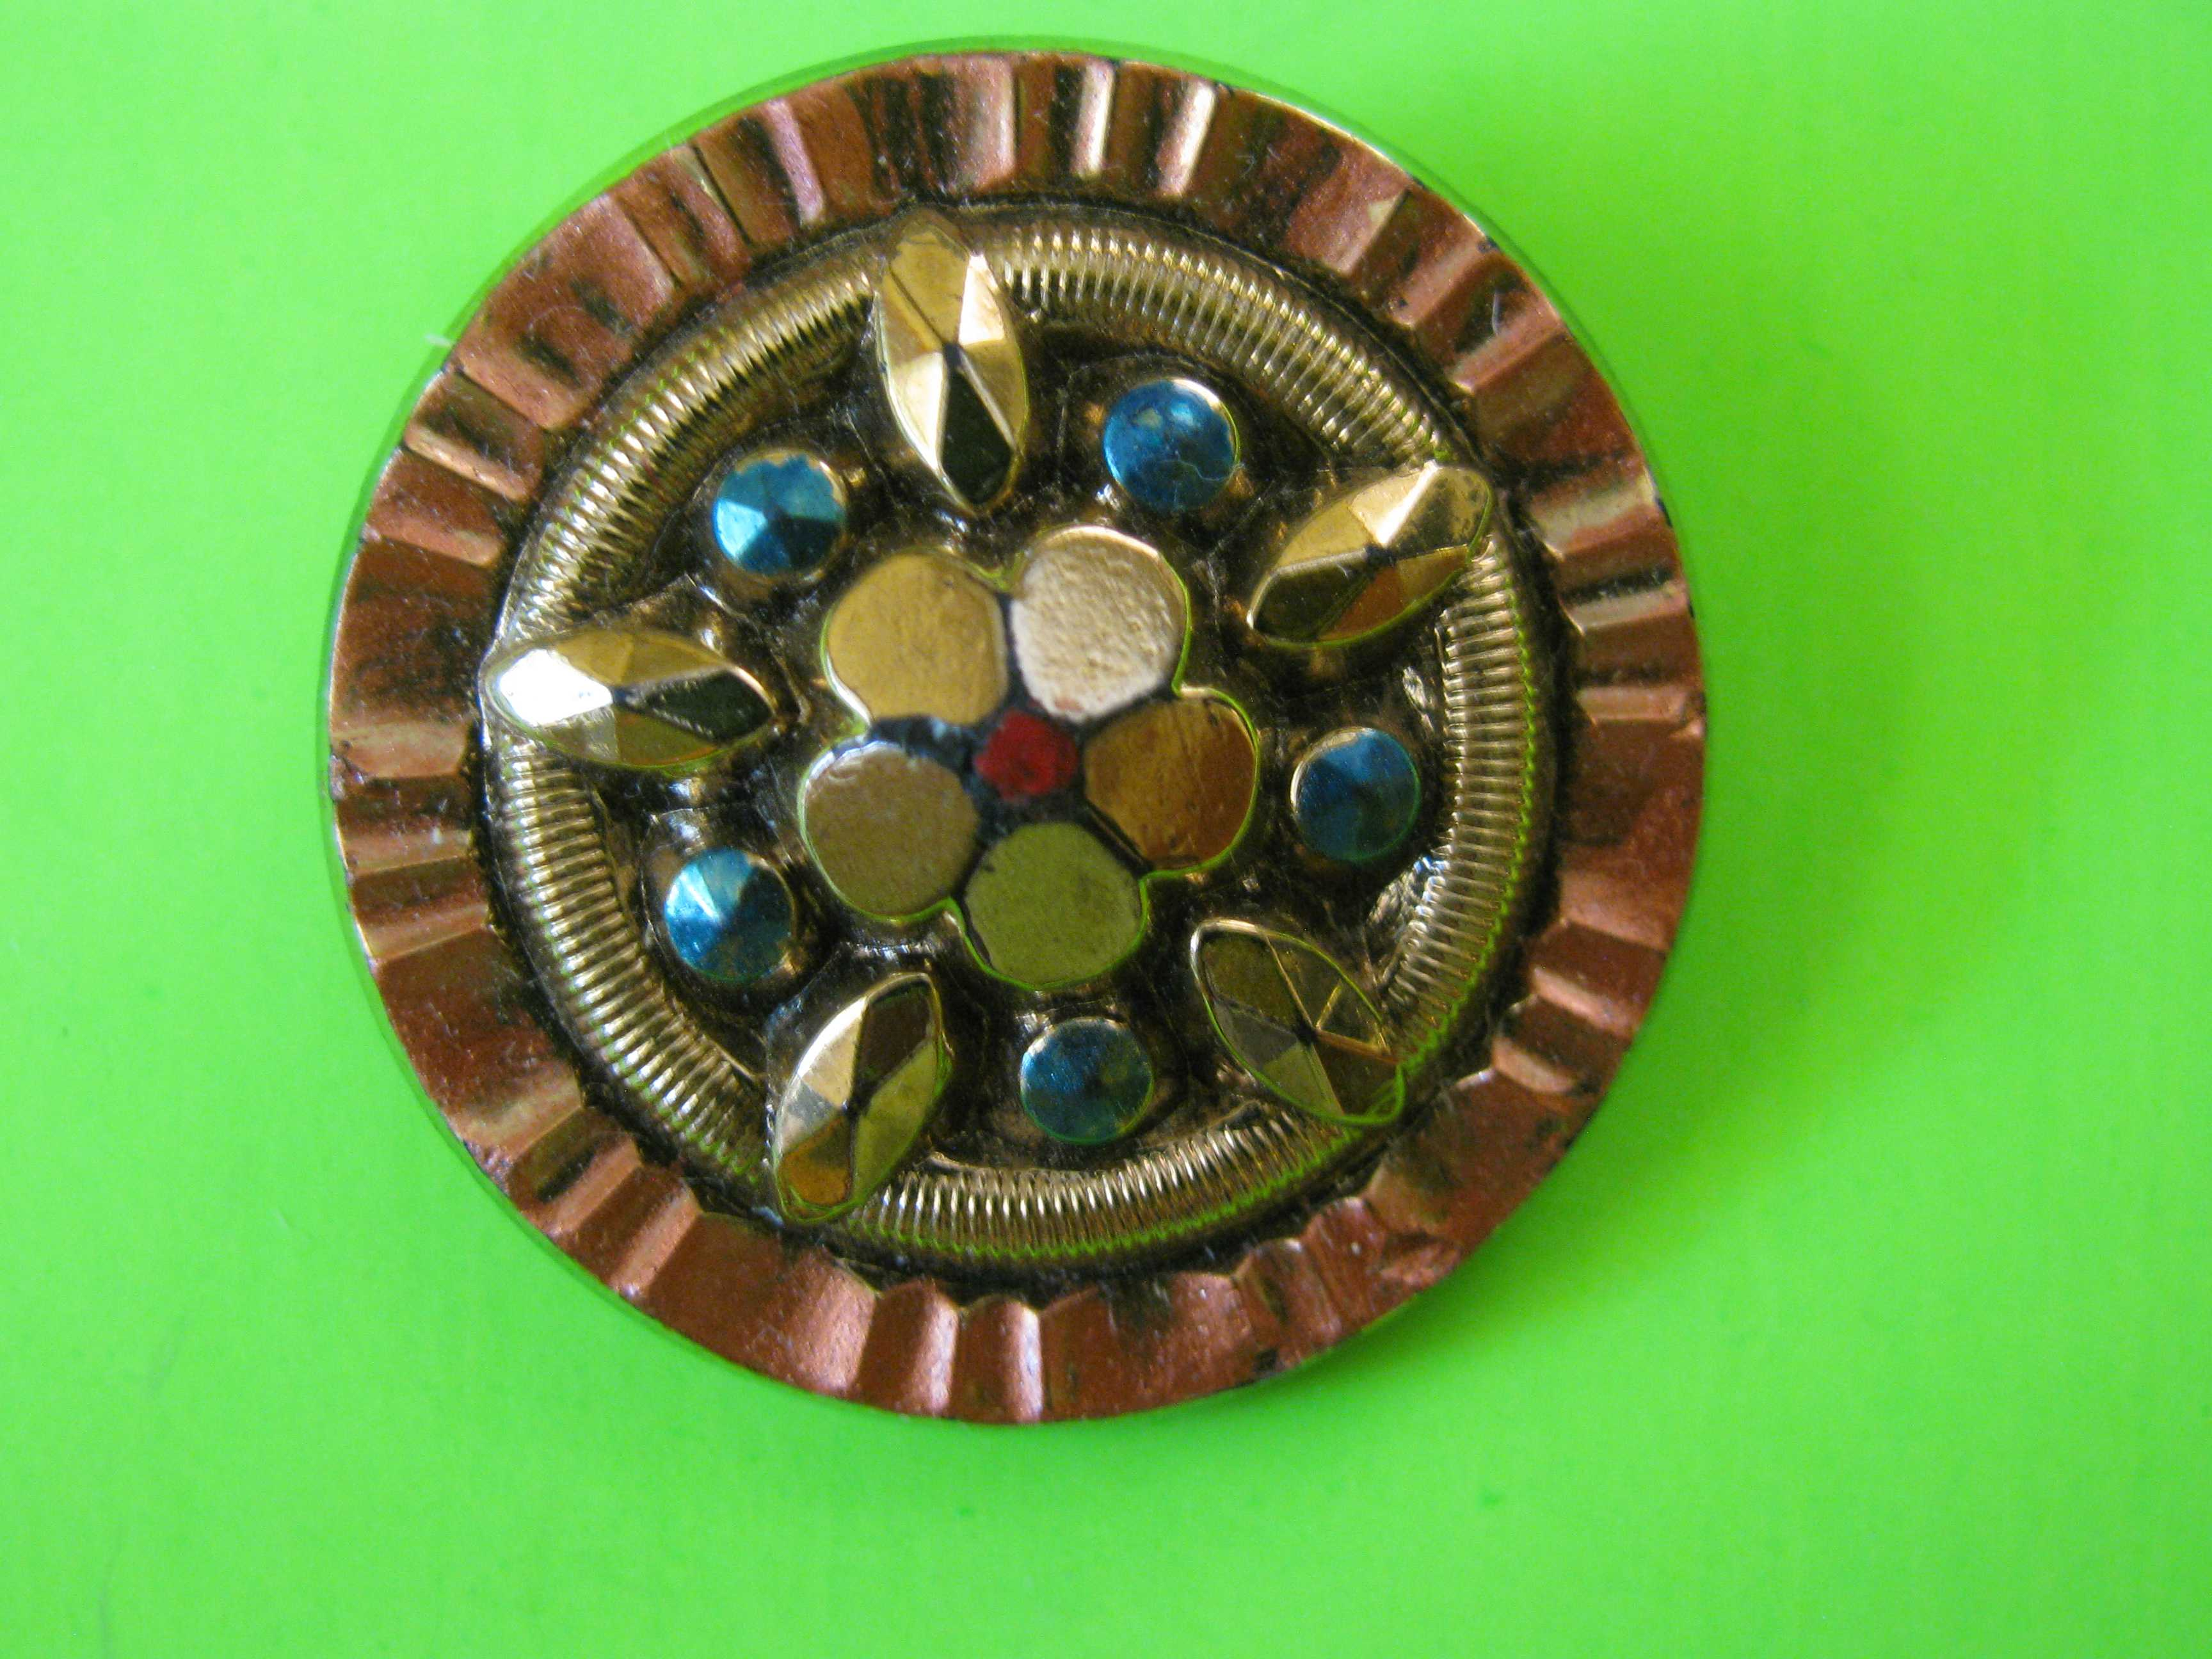 Aztec Style Circular Button with Star Shaped Stones Embedded in Center & a Brass Loop Shank